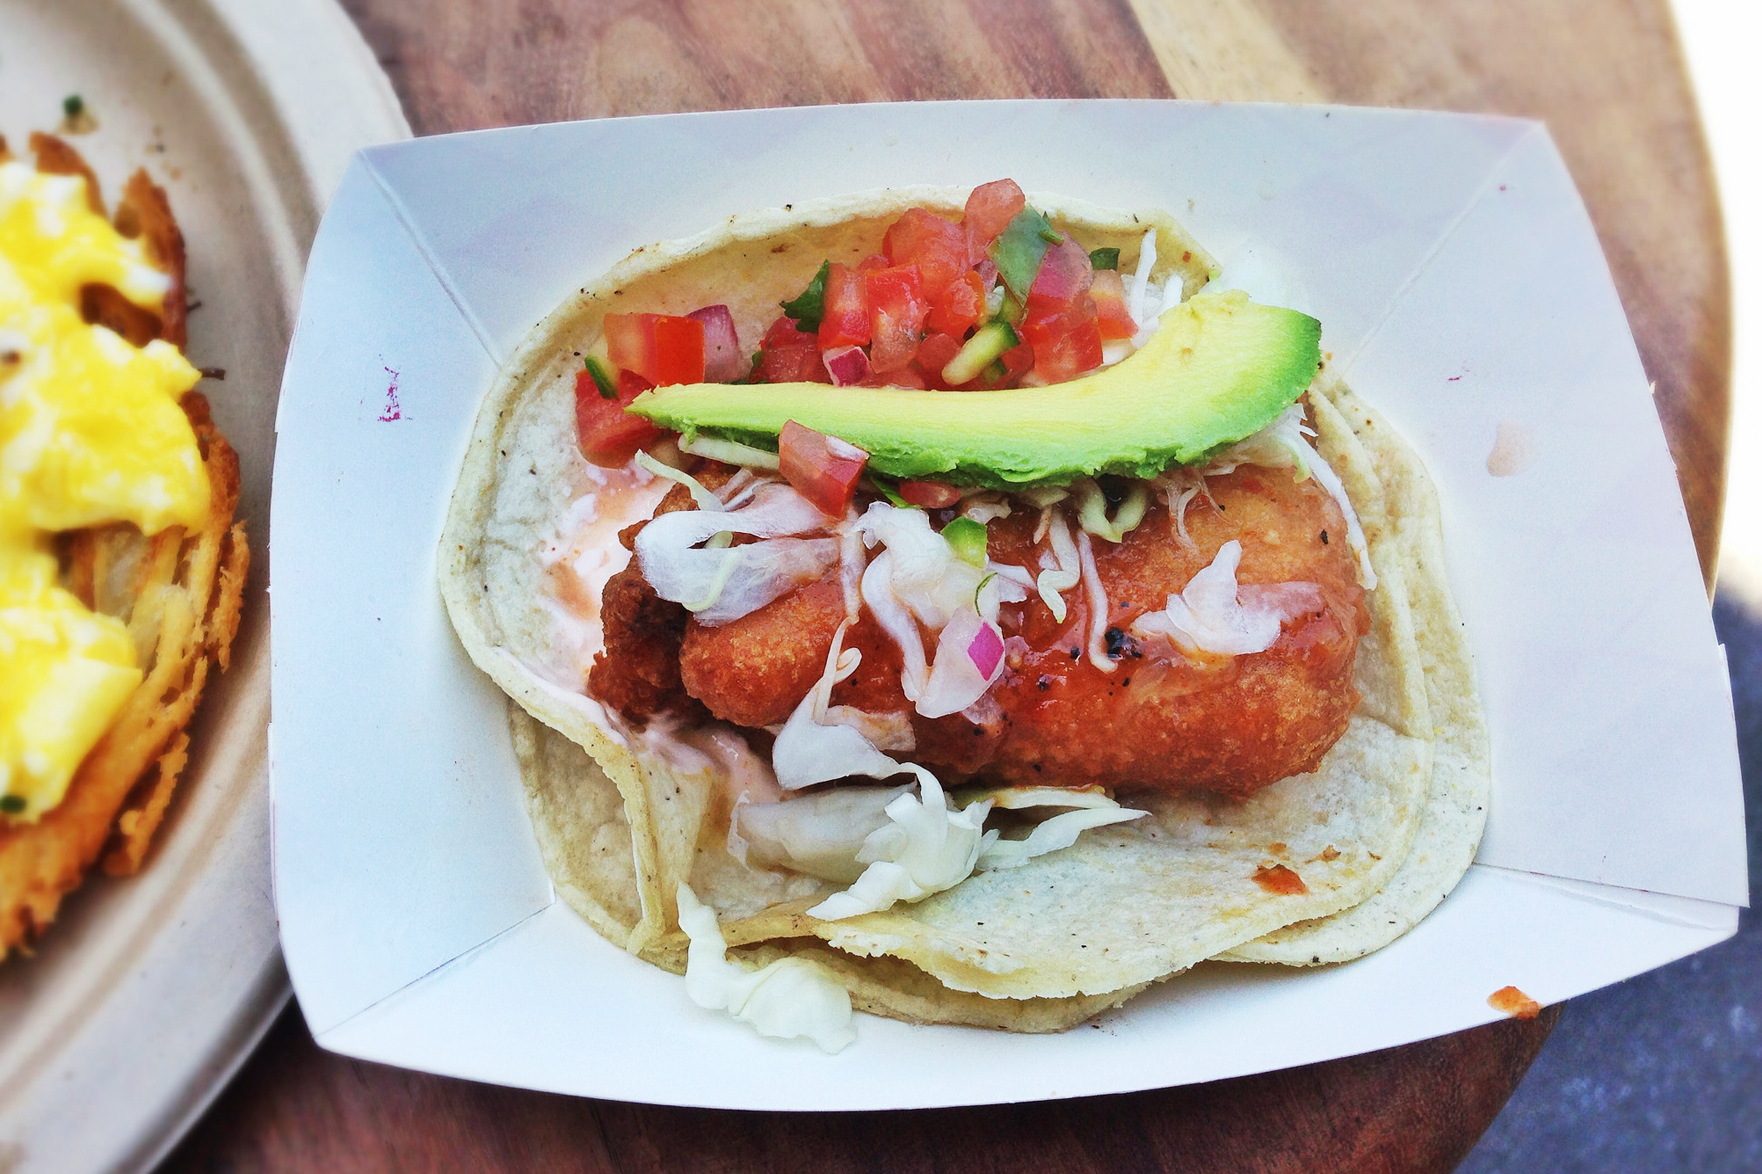 Take a bite — or or maybe don't — of this beer-battered mako shark taco with cabbage, pico de gallo, avocado, arbol chile and cream from Guerilla Tacos in Los Angeles. Photo: T. Tseng/Flickr